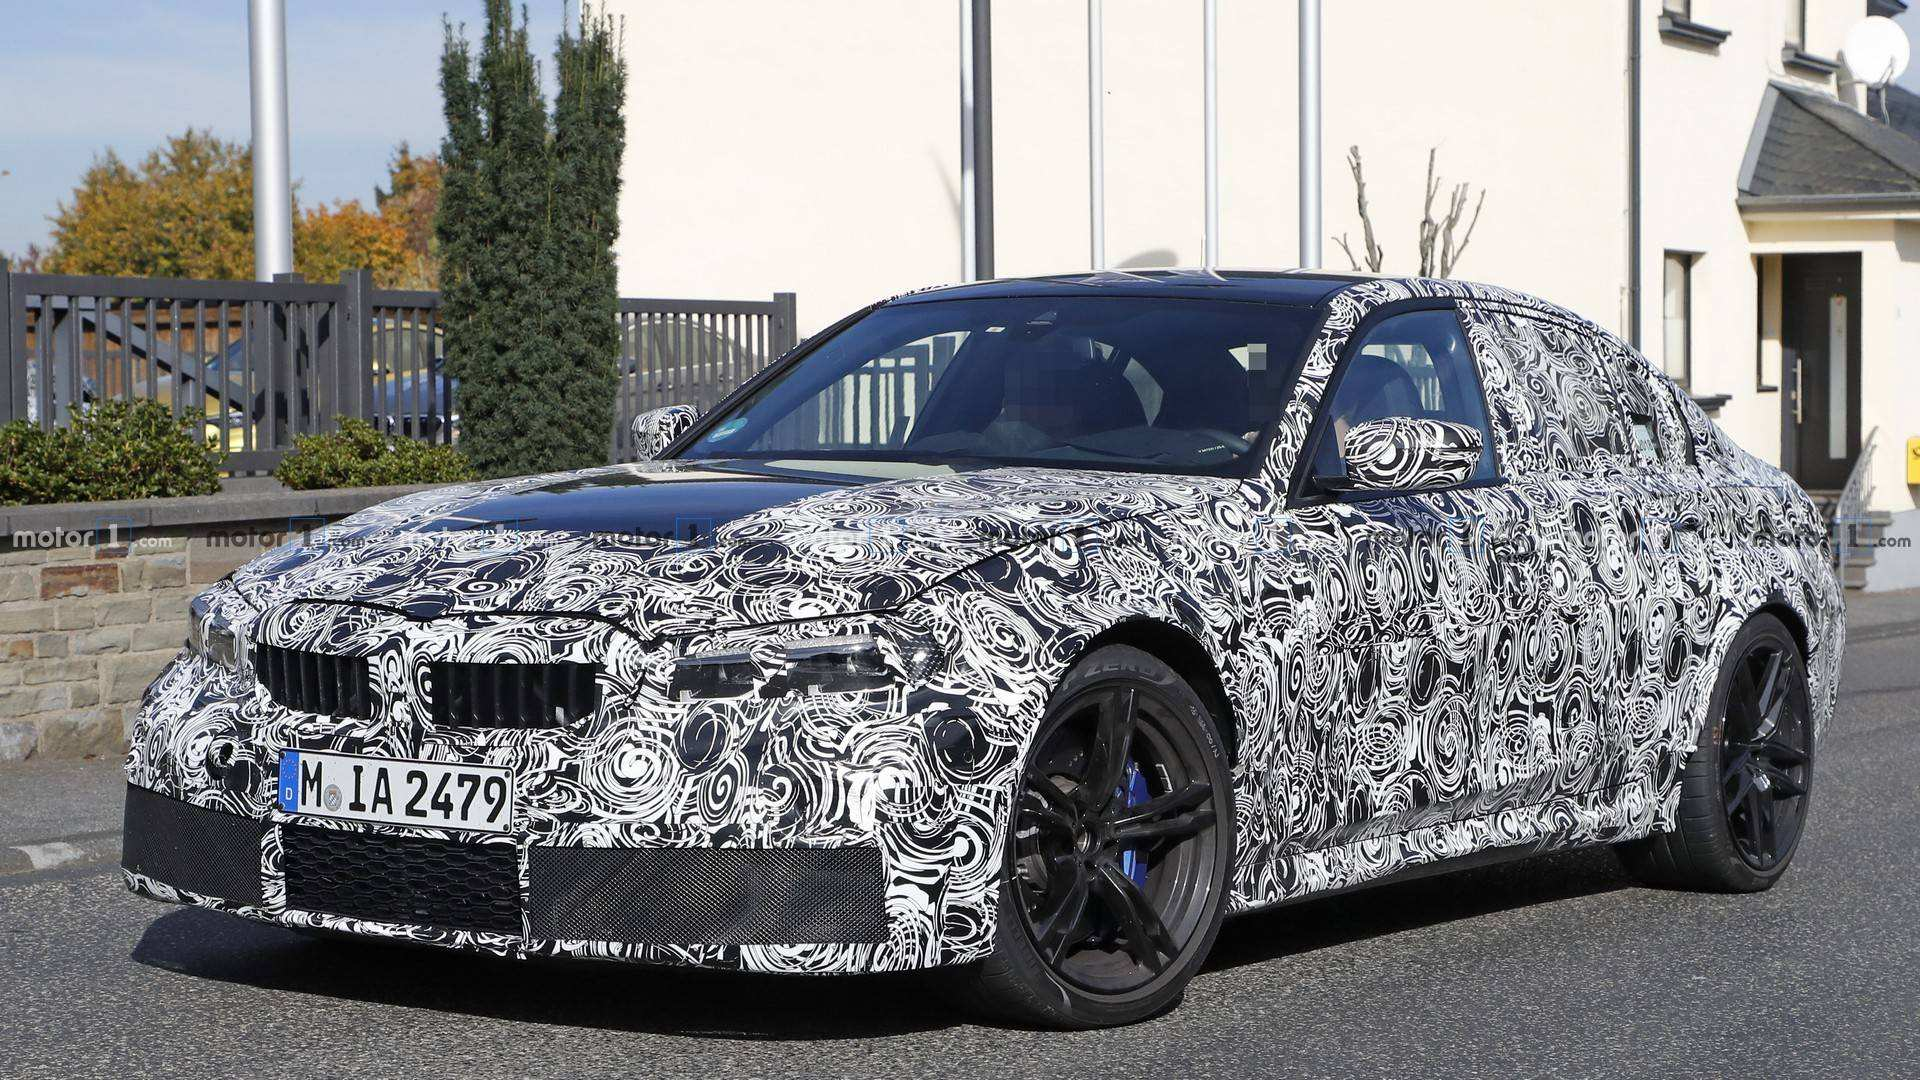 73 Great When Does The 2020 Bmw M3 Come Out History for When Does The 2020 Bmw M3 Come Out